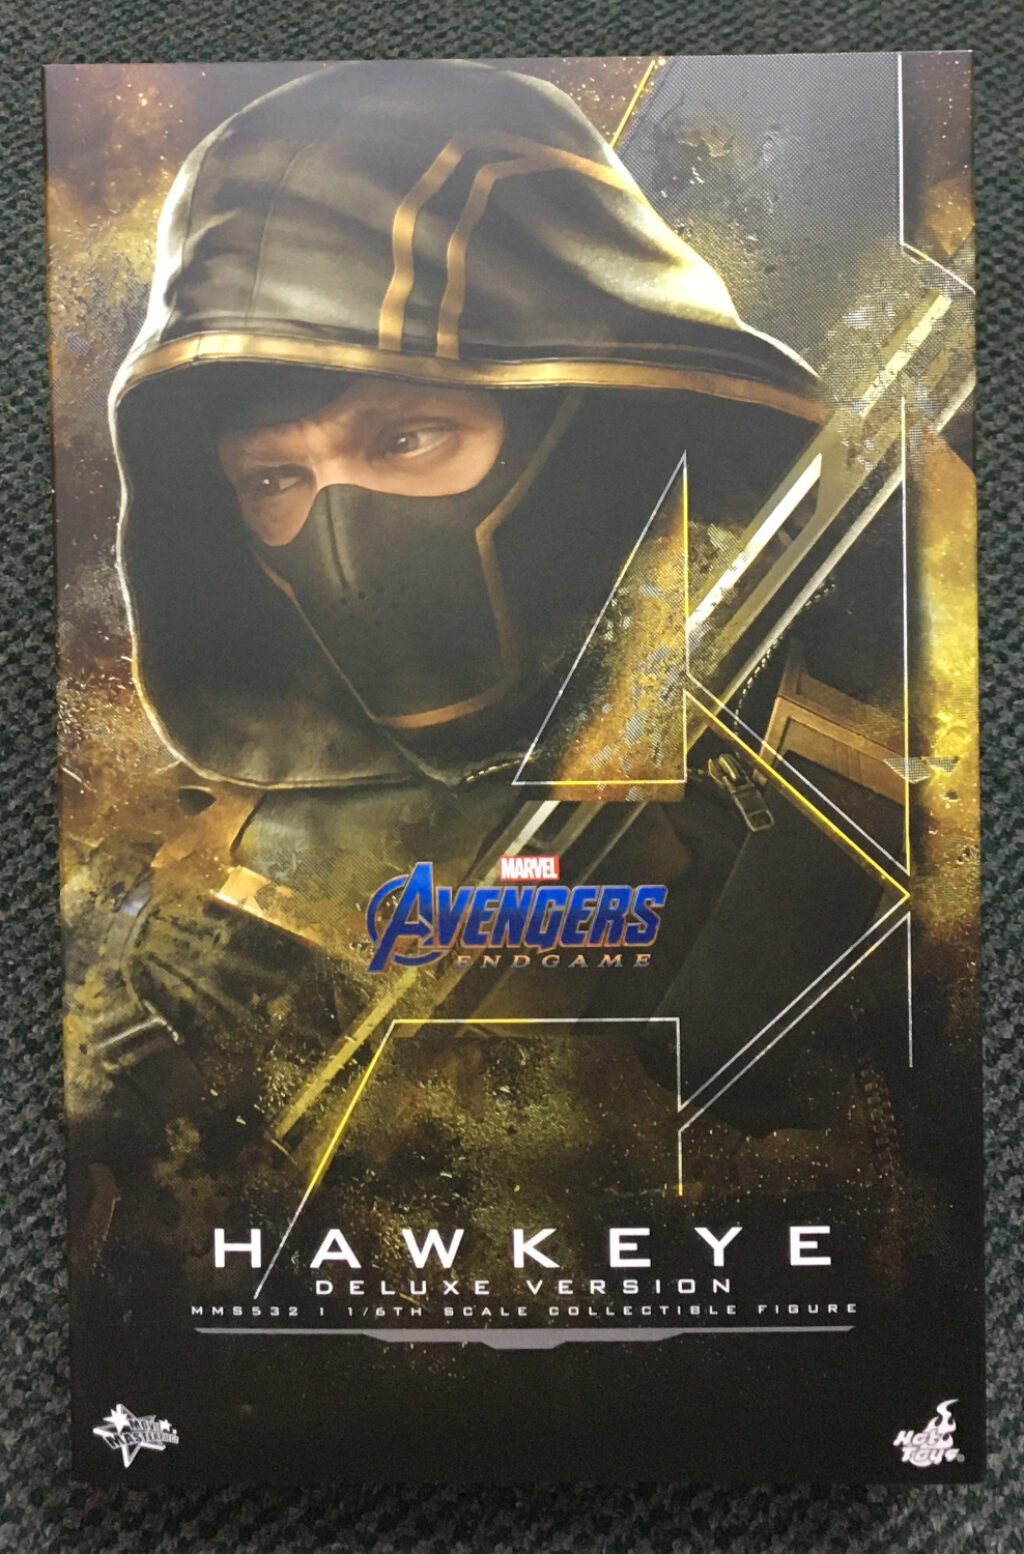 hot toys avengers endgame hawkeye deluxe 1:6 scale figure 1